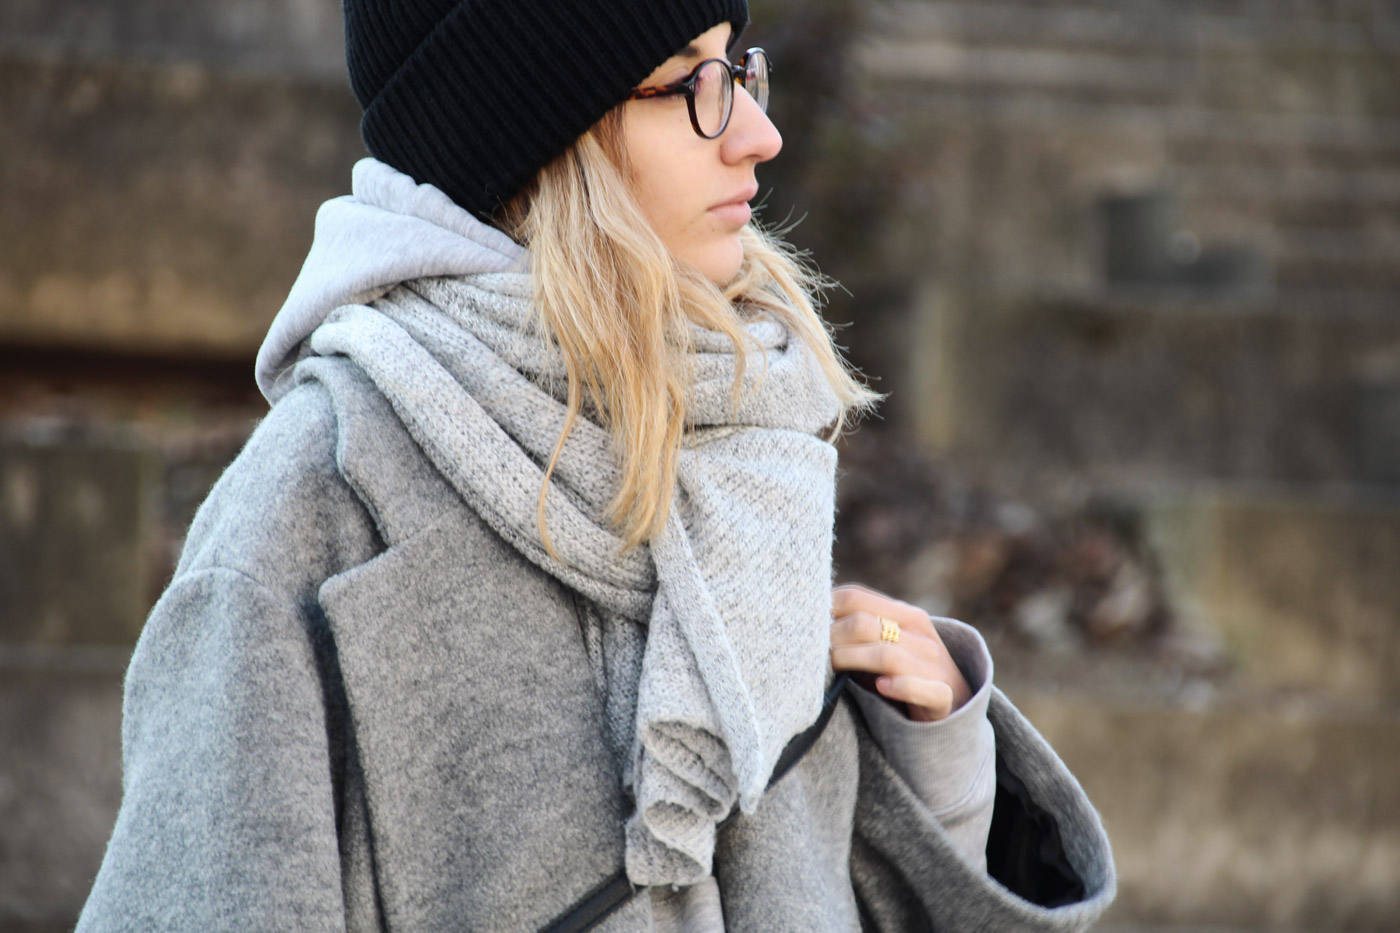 manteau-oversize-hm-blog-mode